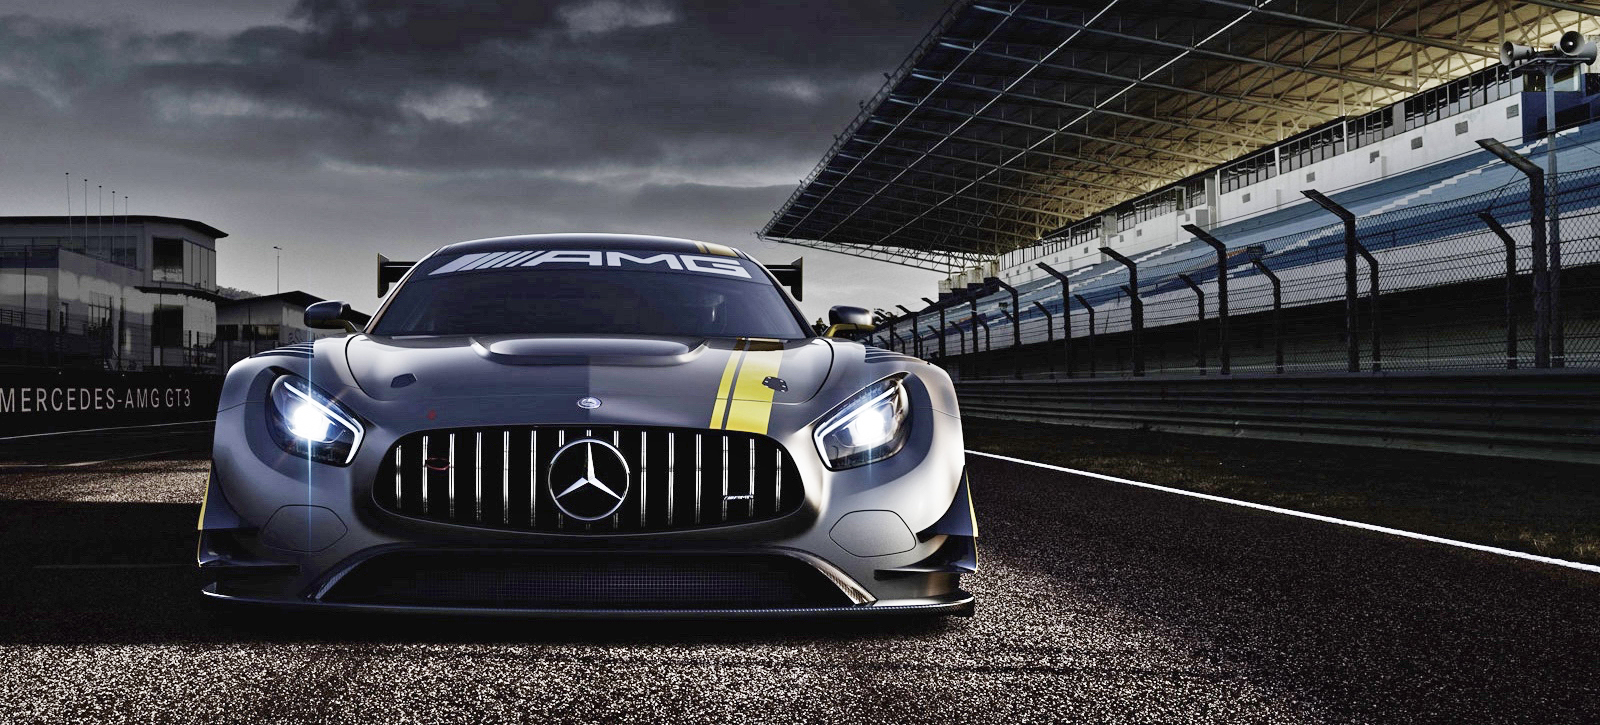 Project cars new mercedes amg gt3 previews virtualr sim racing - Iracing 2015 Mercedes Amg Gt3 License Agreement Announced